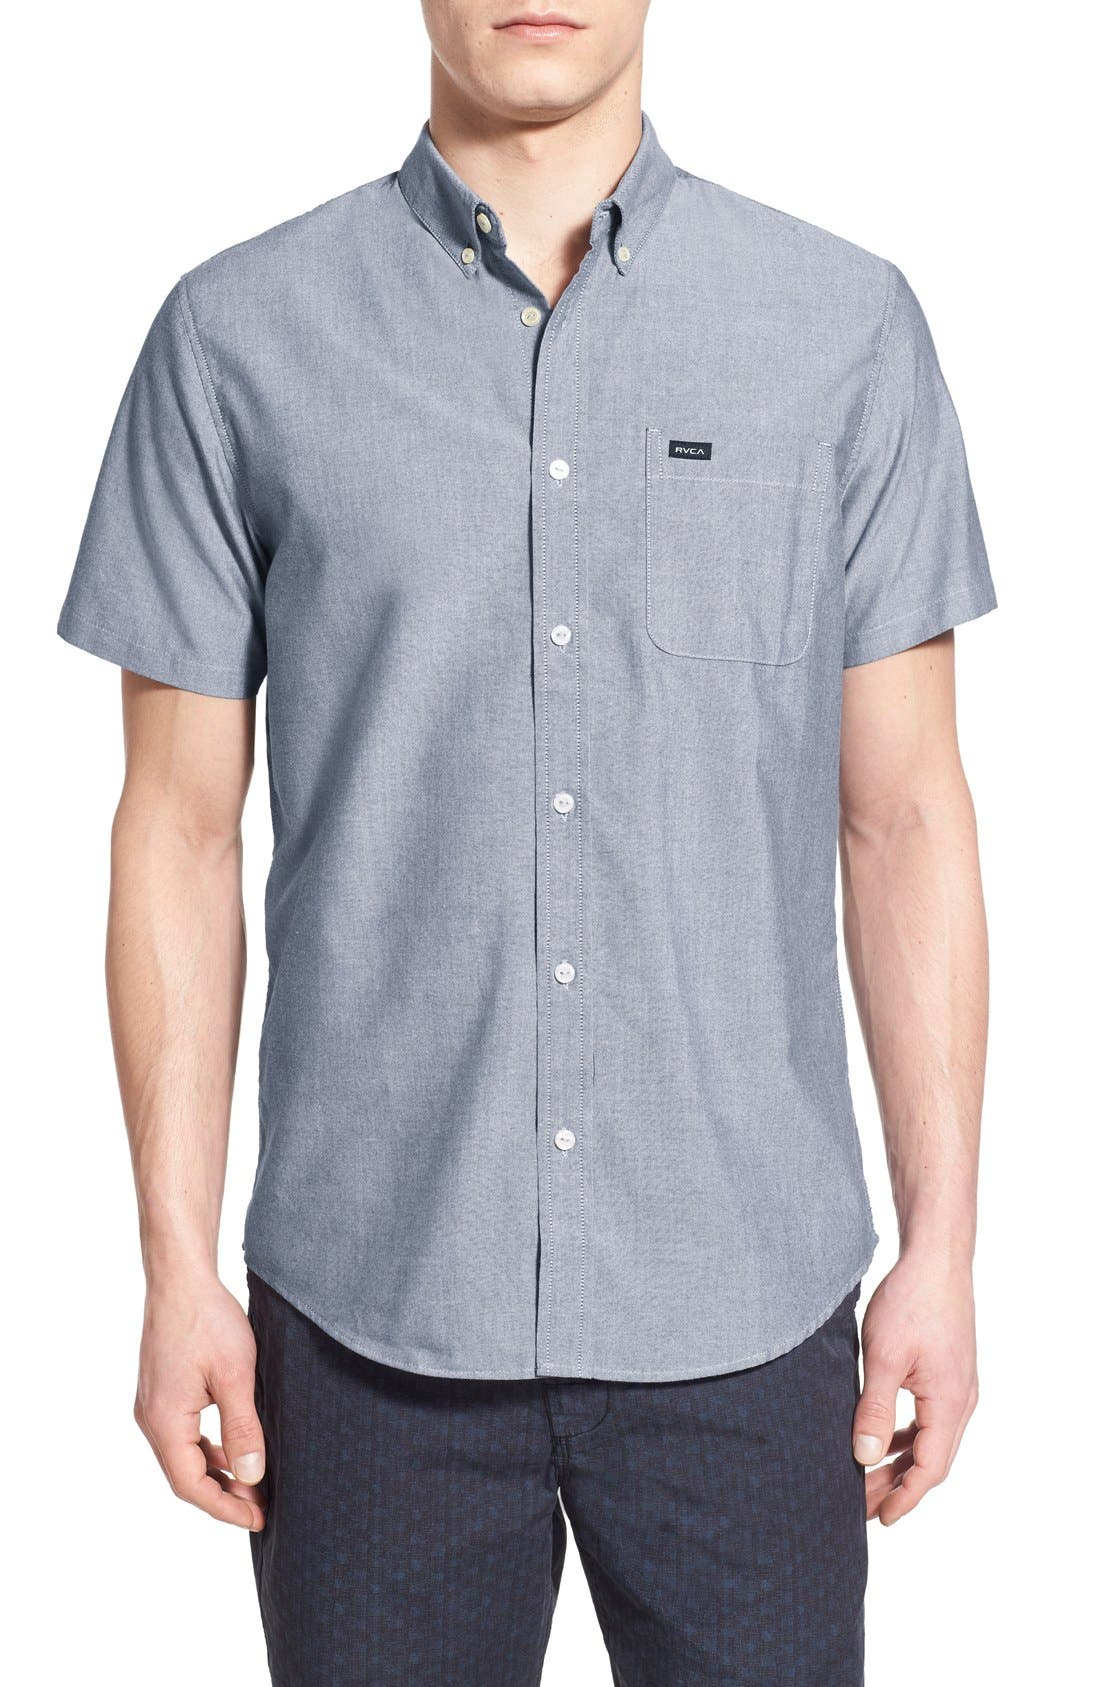 Main Image - RVCA 'That'll Do' Slim Fit Short Sleeve Oxford Shirt